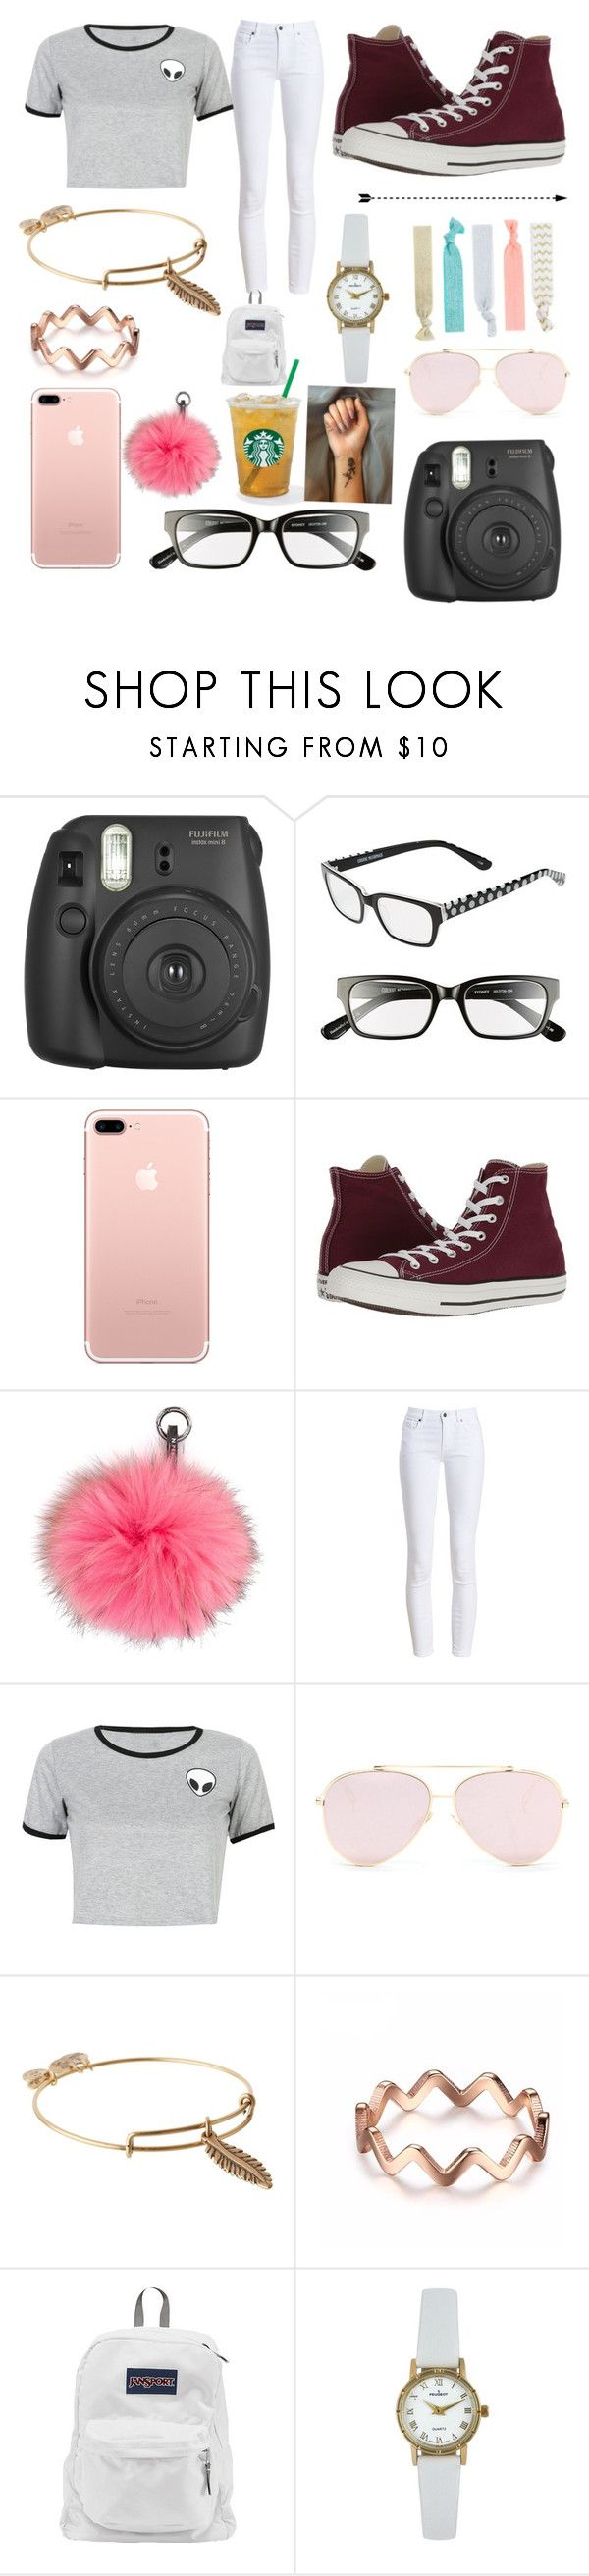 """""""Life as a girl you tuber"""" by alaina05 ❤ liked on Polyvore featuring Fujifilm, Corinne McCormack, Converse, N.Peal, Barbour, WithChic, Alex and Ani, JanSport, Peugeot and Accessorize"""